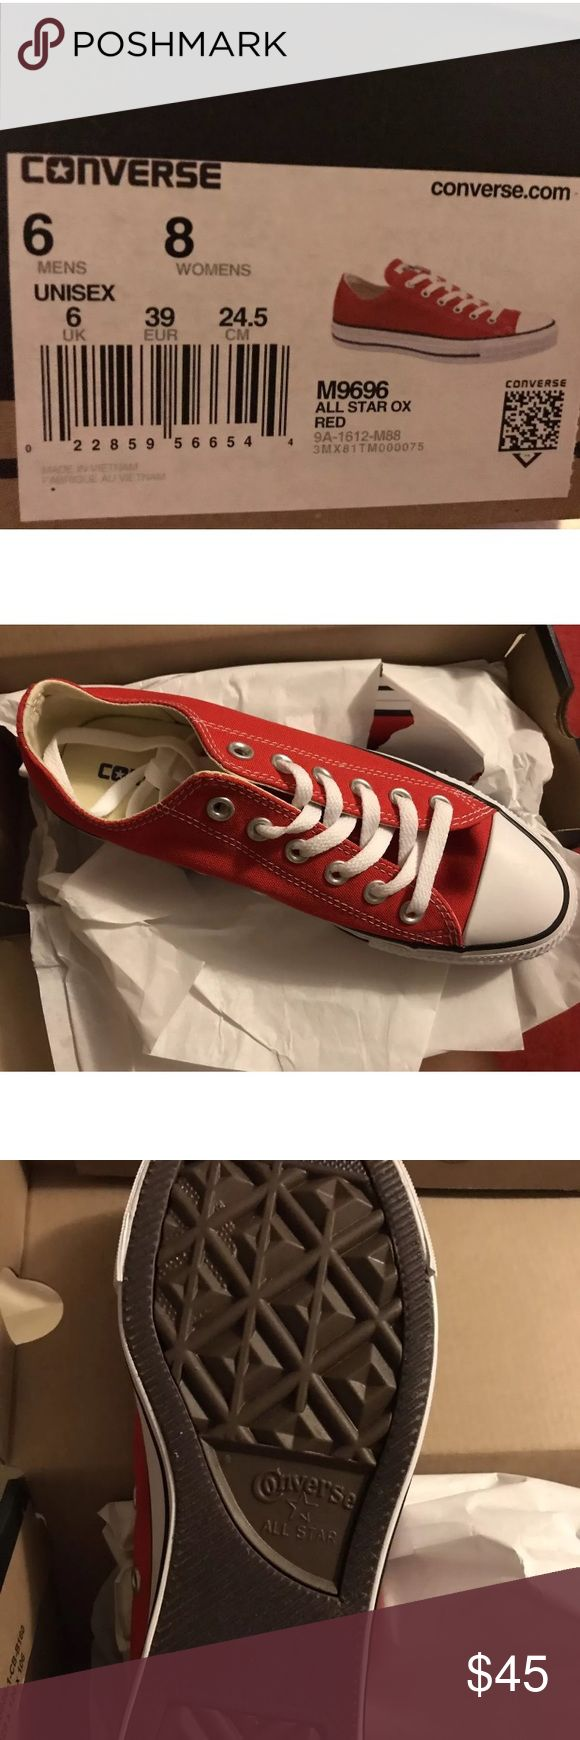 Converse All Star Ox Red Sneakers Sz 8 Women's BN w/o Box Converse All Star Unisex shoes Ox Red- Women's 8 (Men's 6)  Received as a gift and couldn't return them.           No trades please. Thanks for browsing! Shoes Sneakers